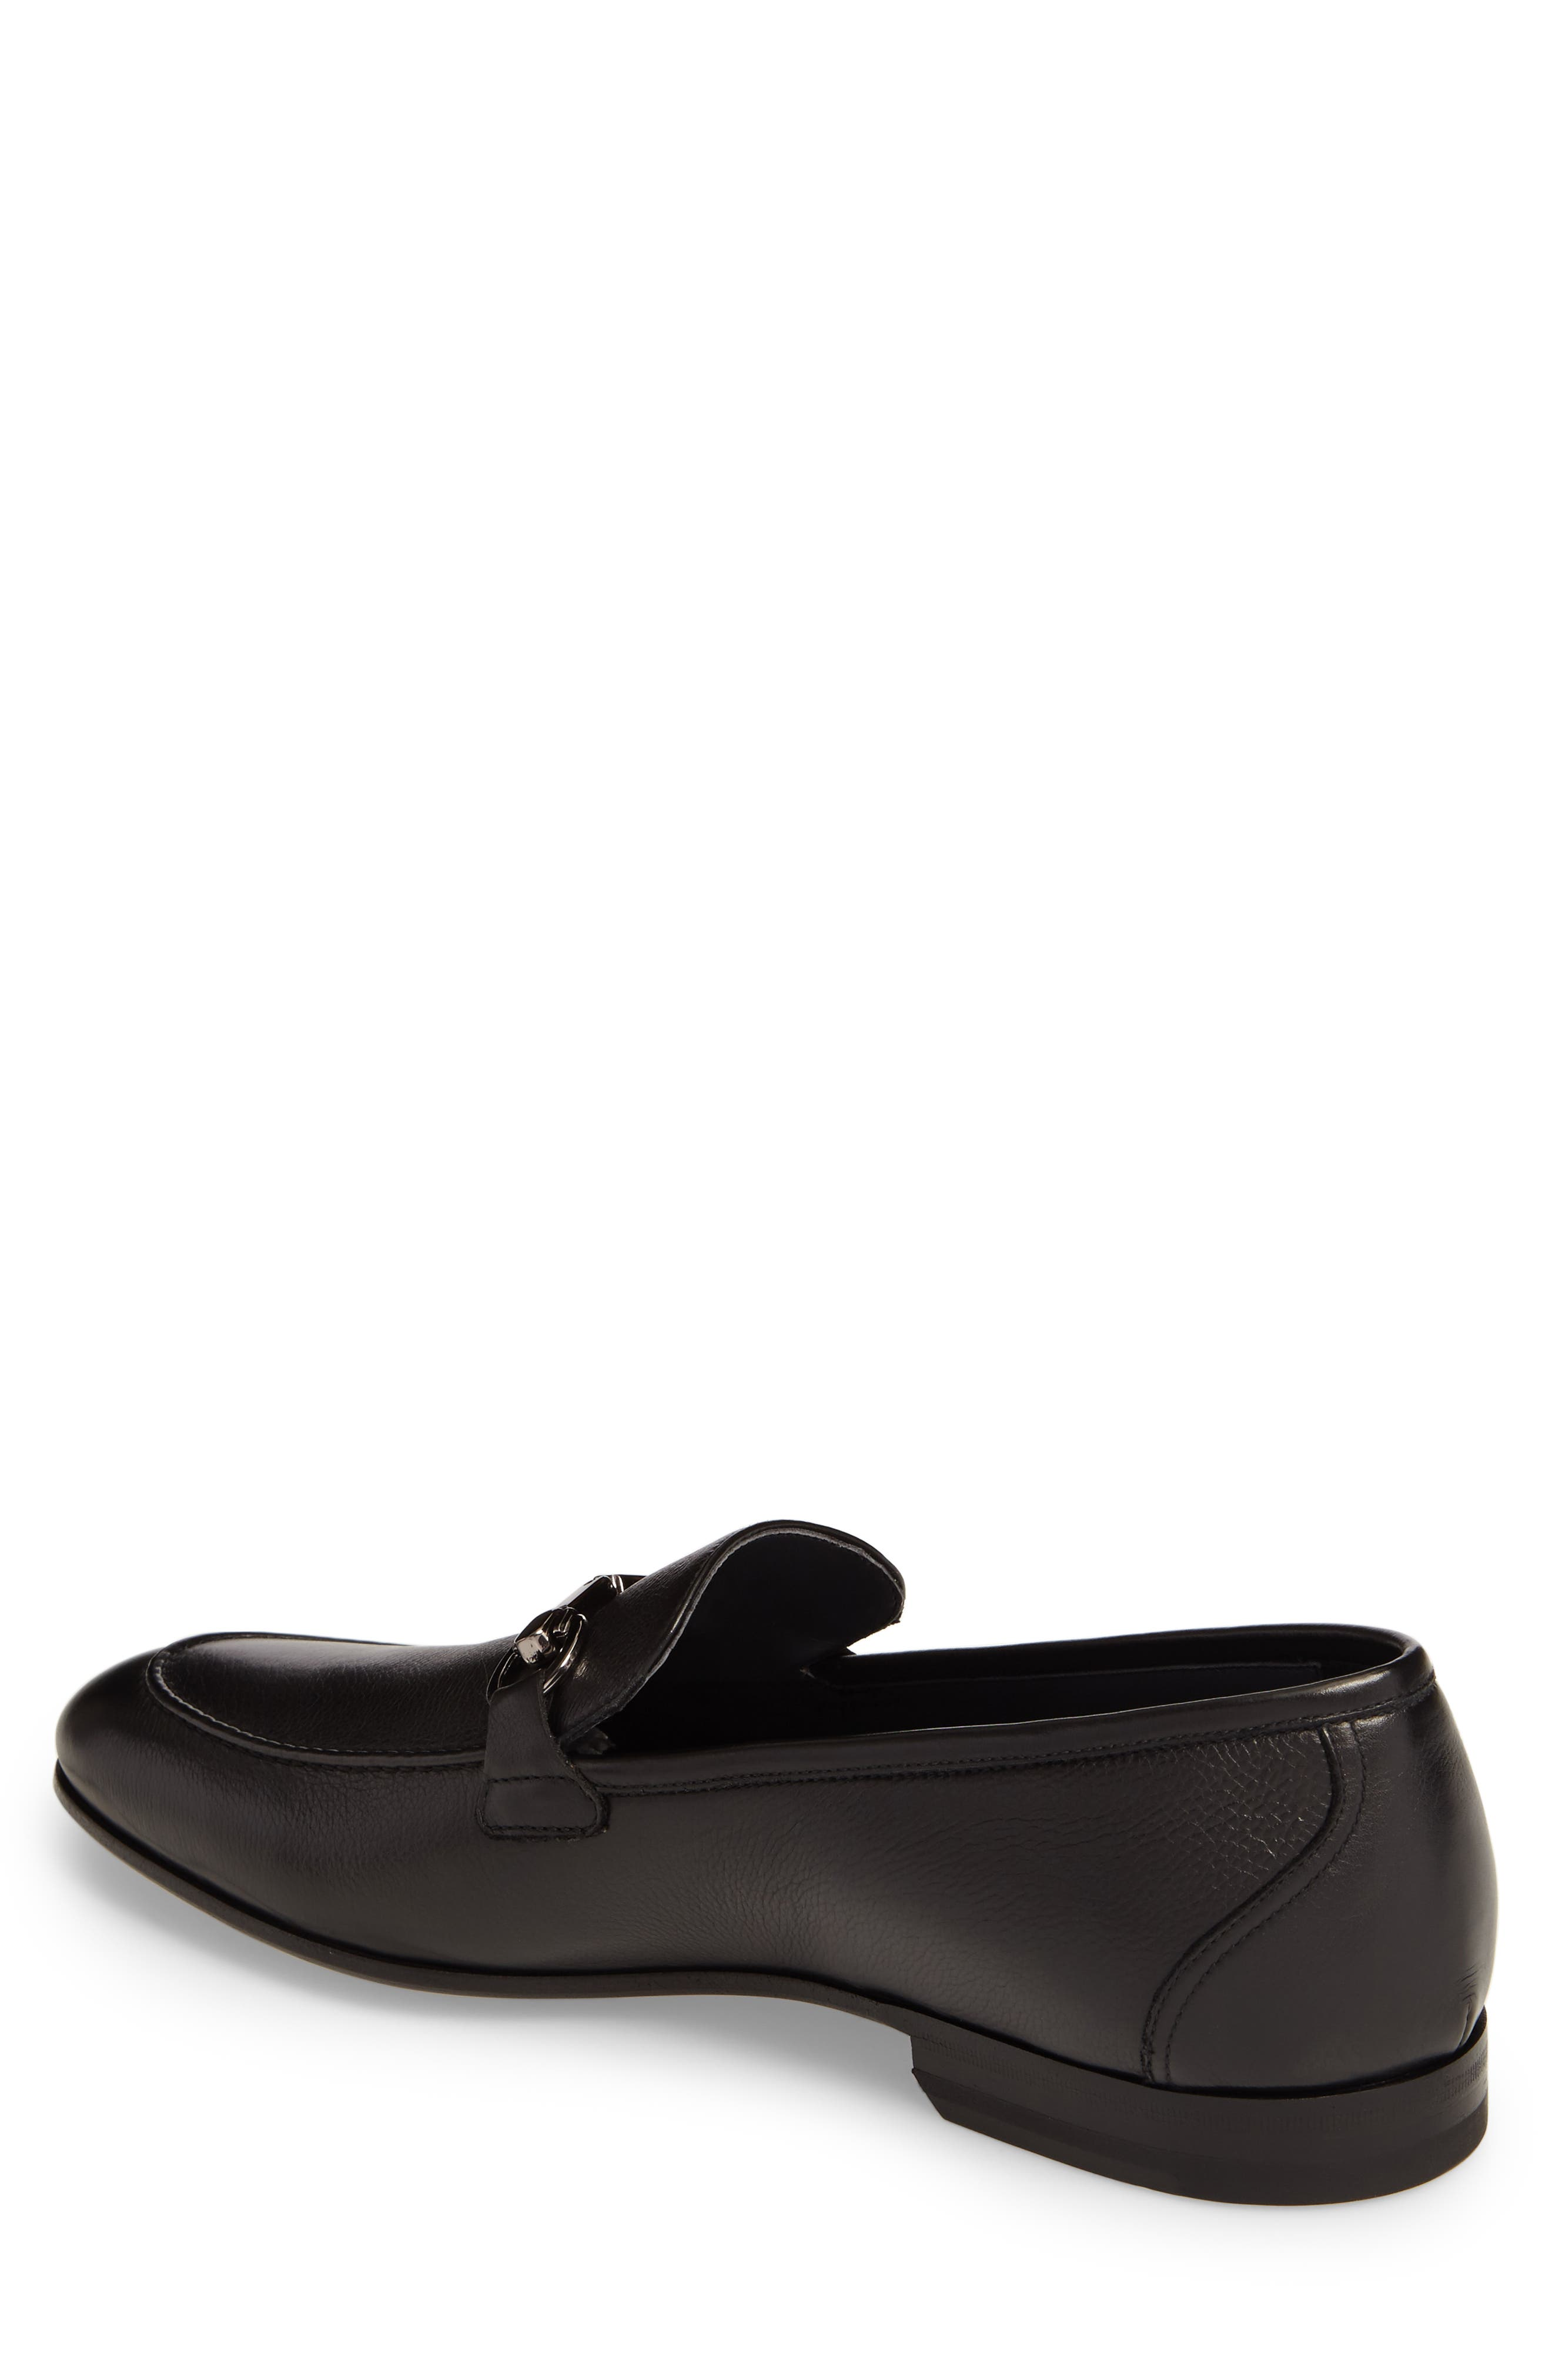 Brianza Bit Loafer,                             Alternate thumbnail 2, color,                             001